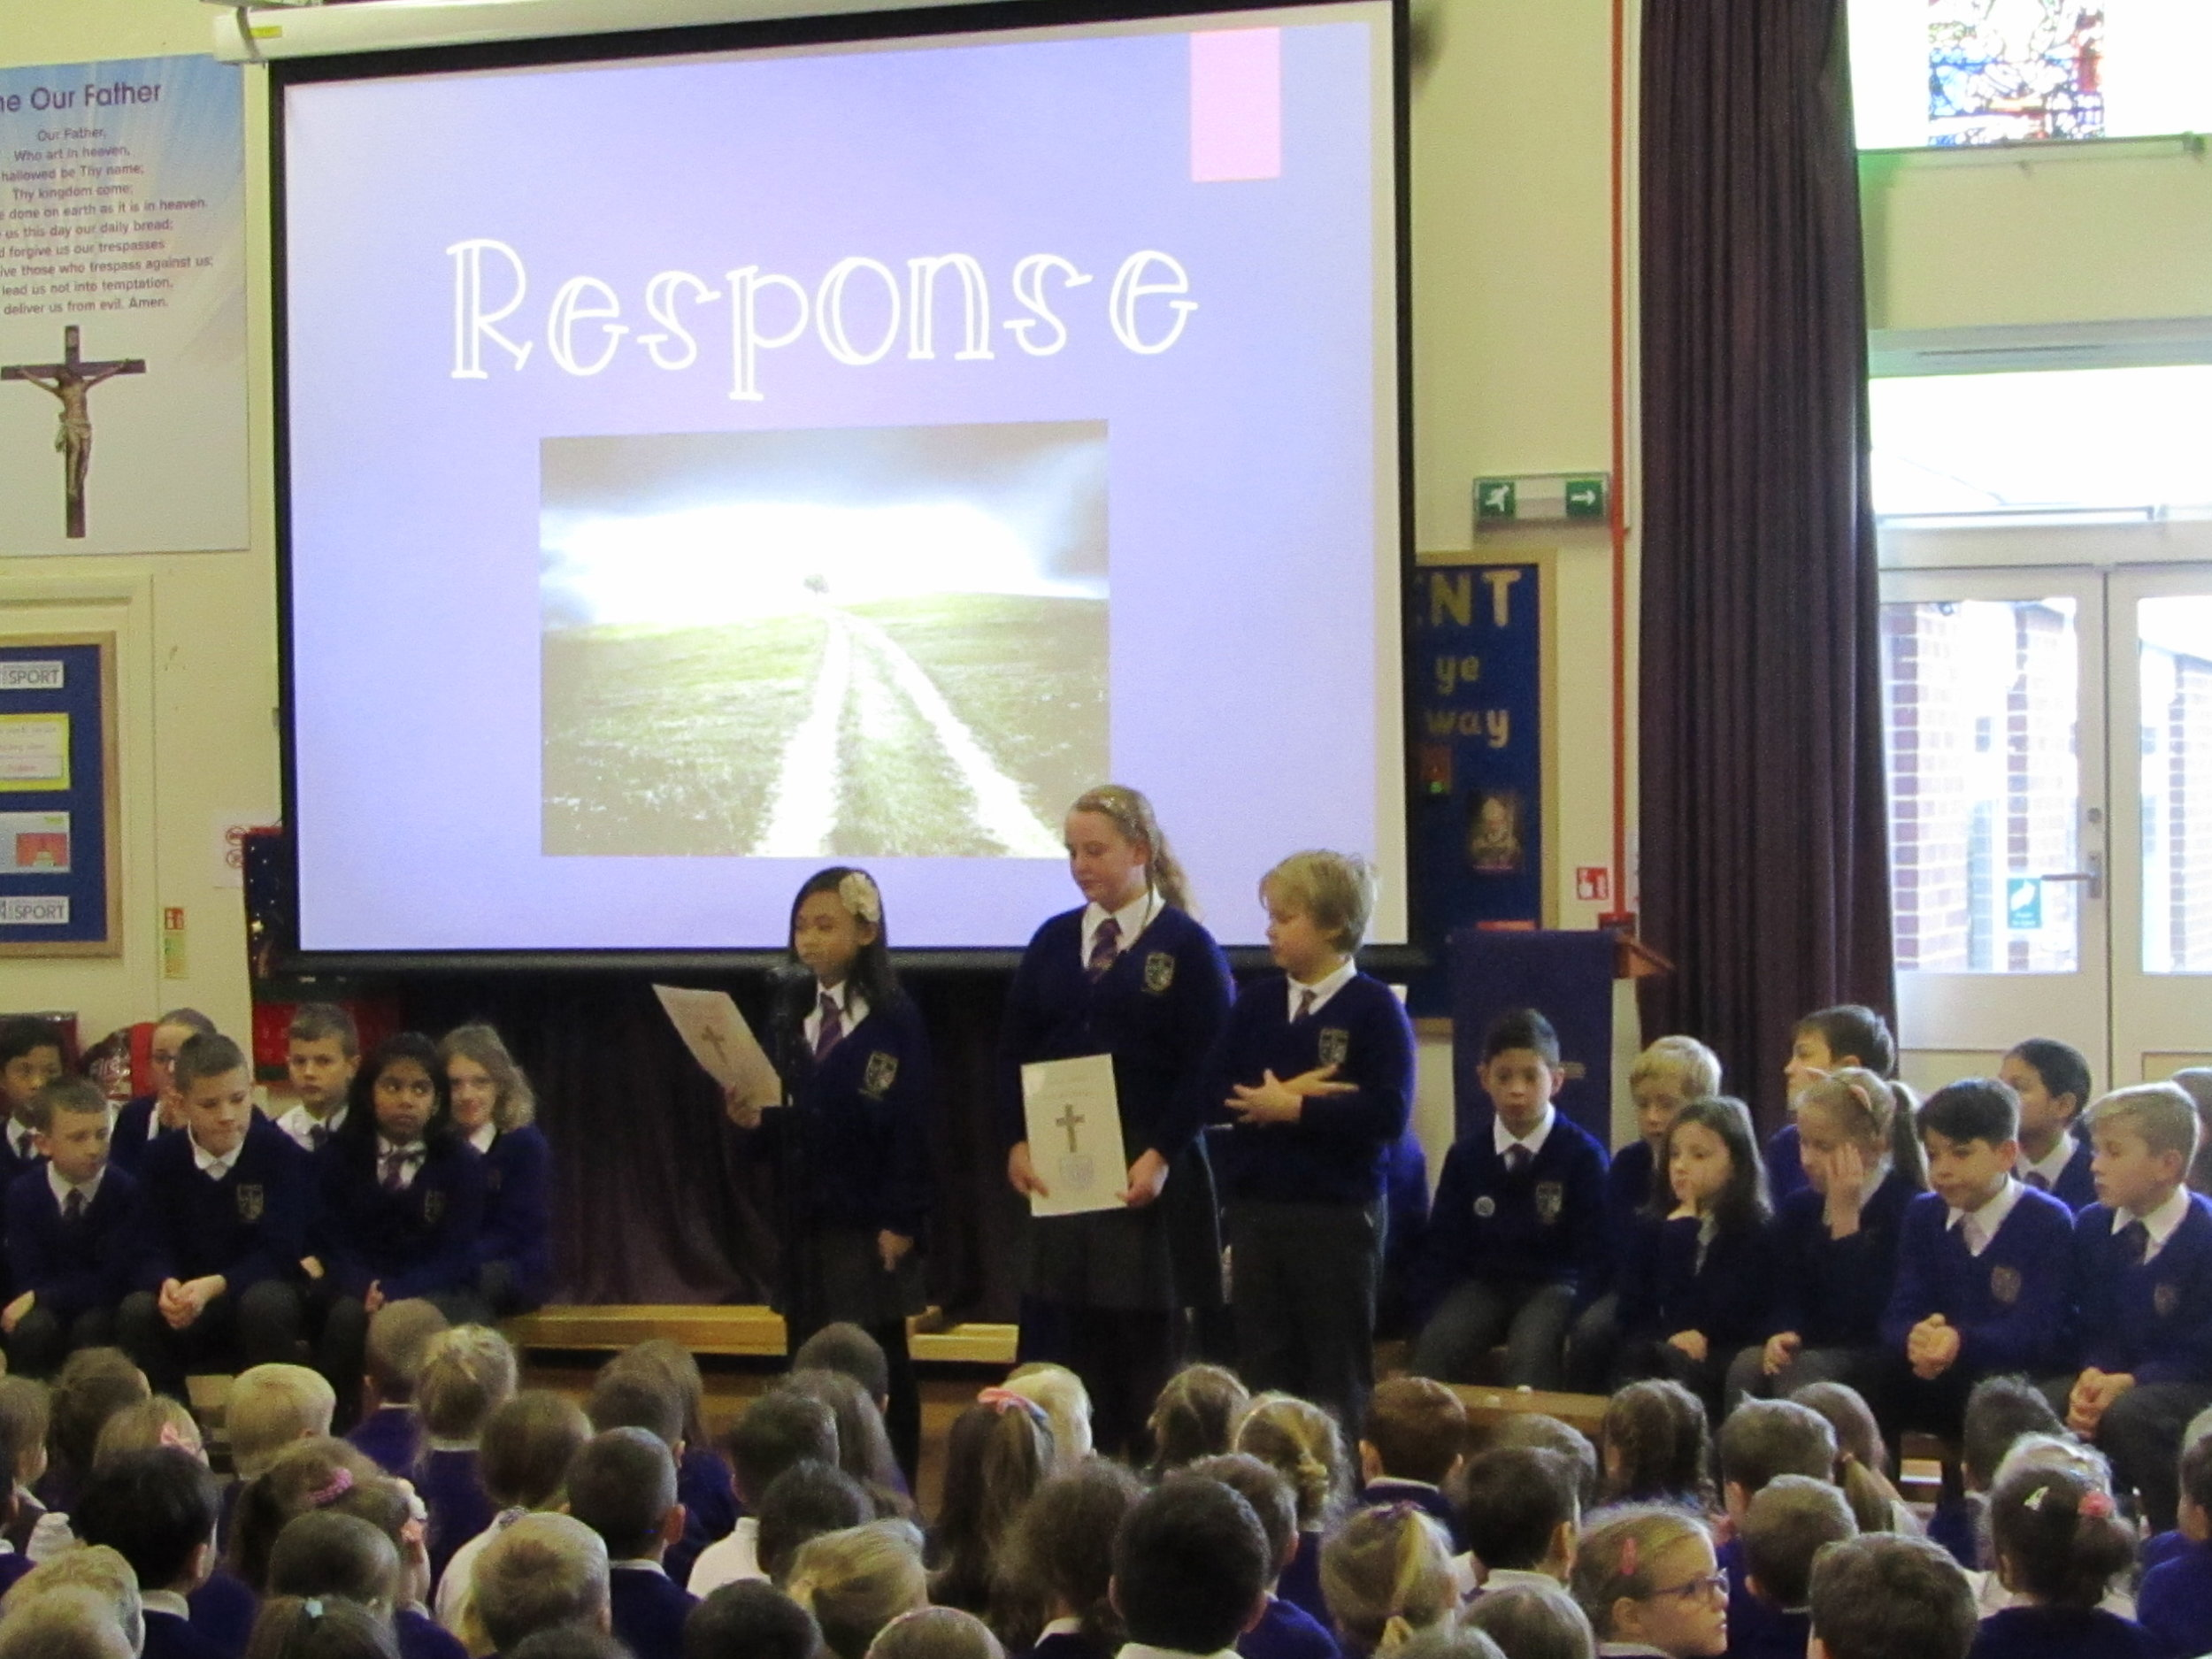 Year 5 led a reverent collective worship, encouraging the whole school to live out our mission of peace - to say sorry and to forgive others - as we make this journey to our Saviour's birth.